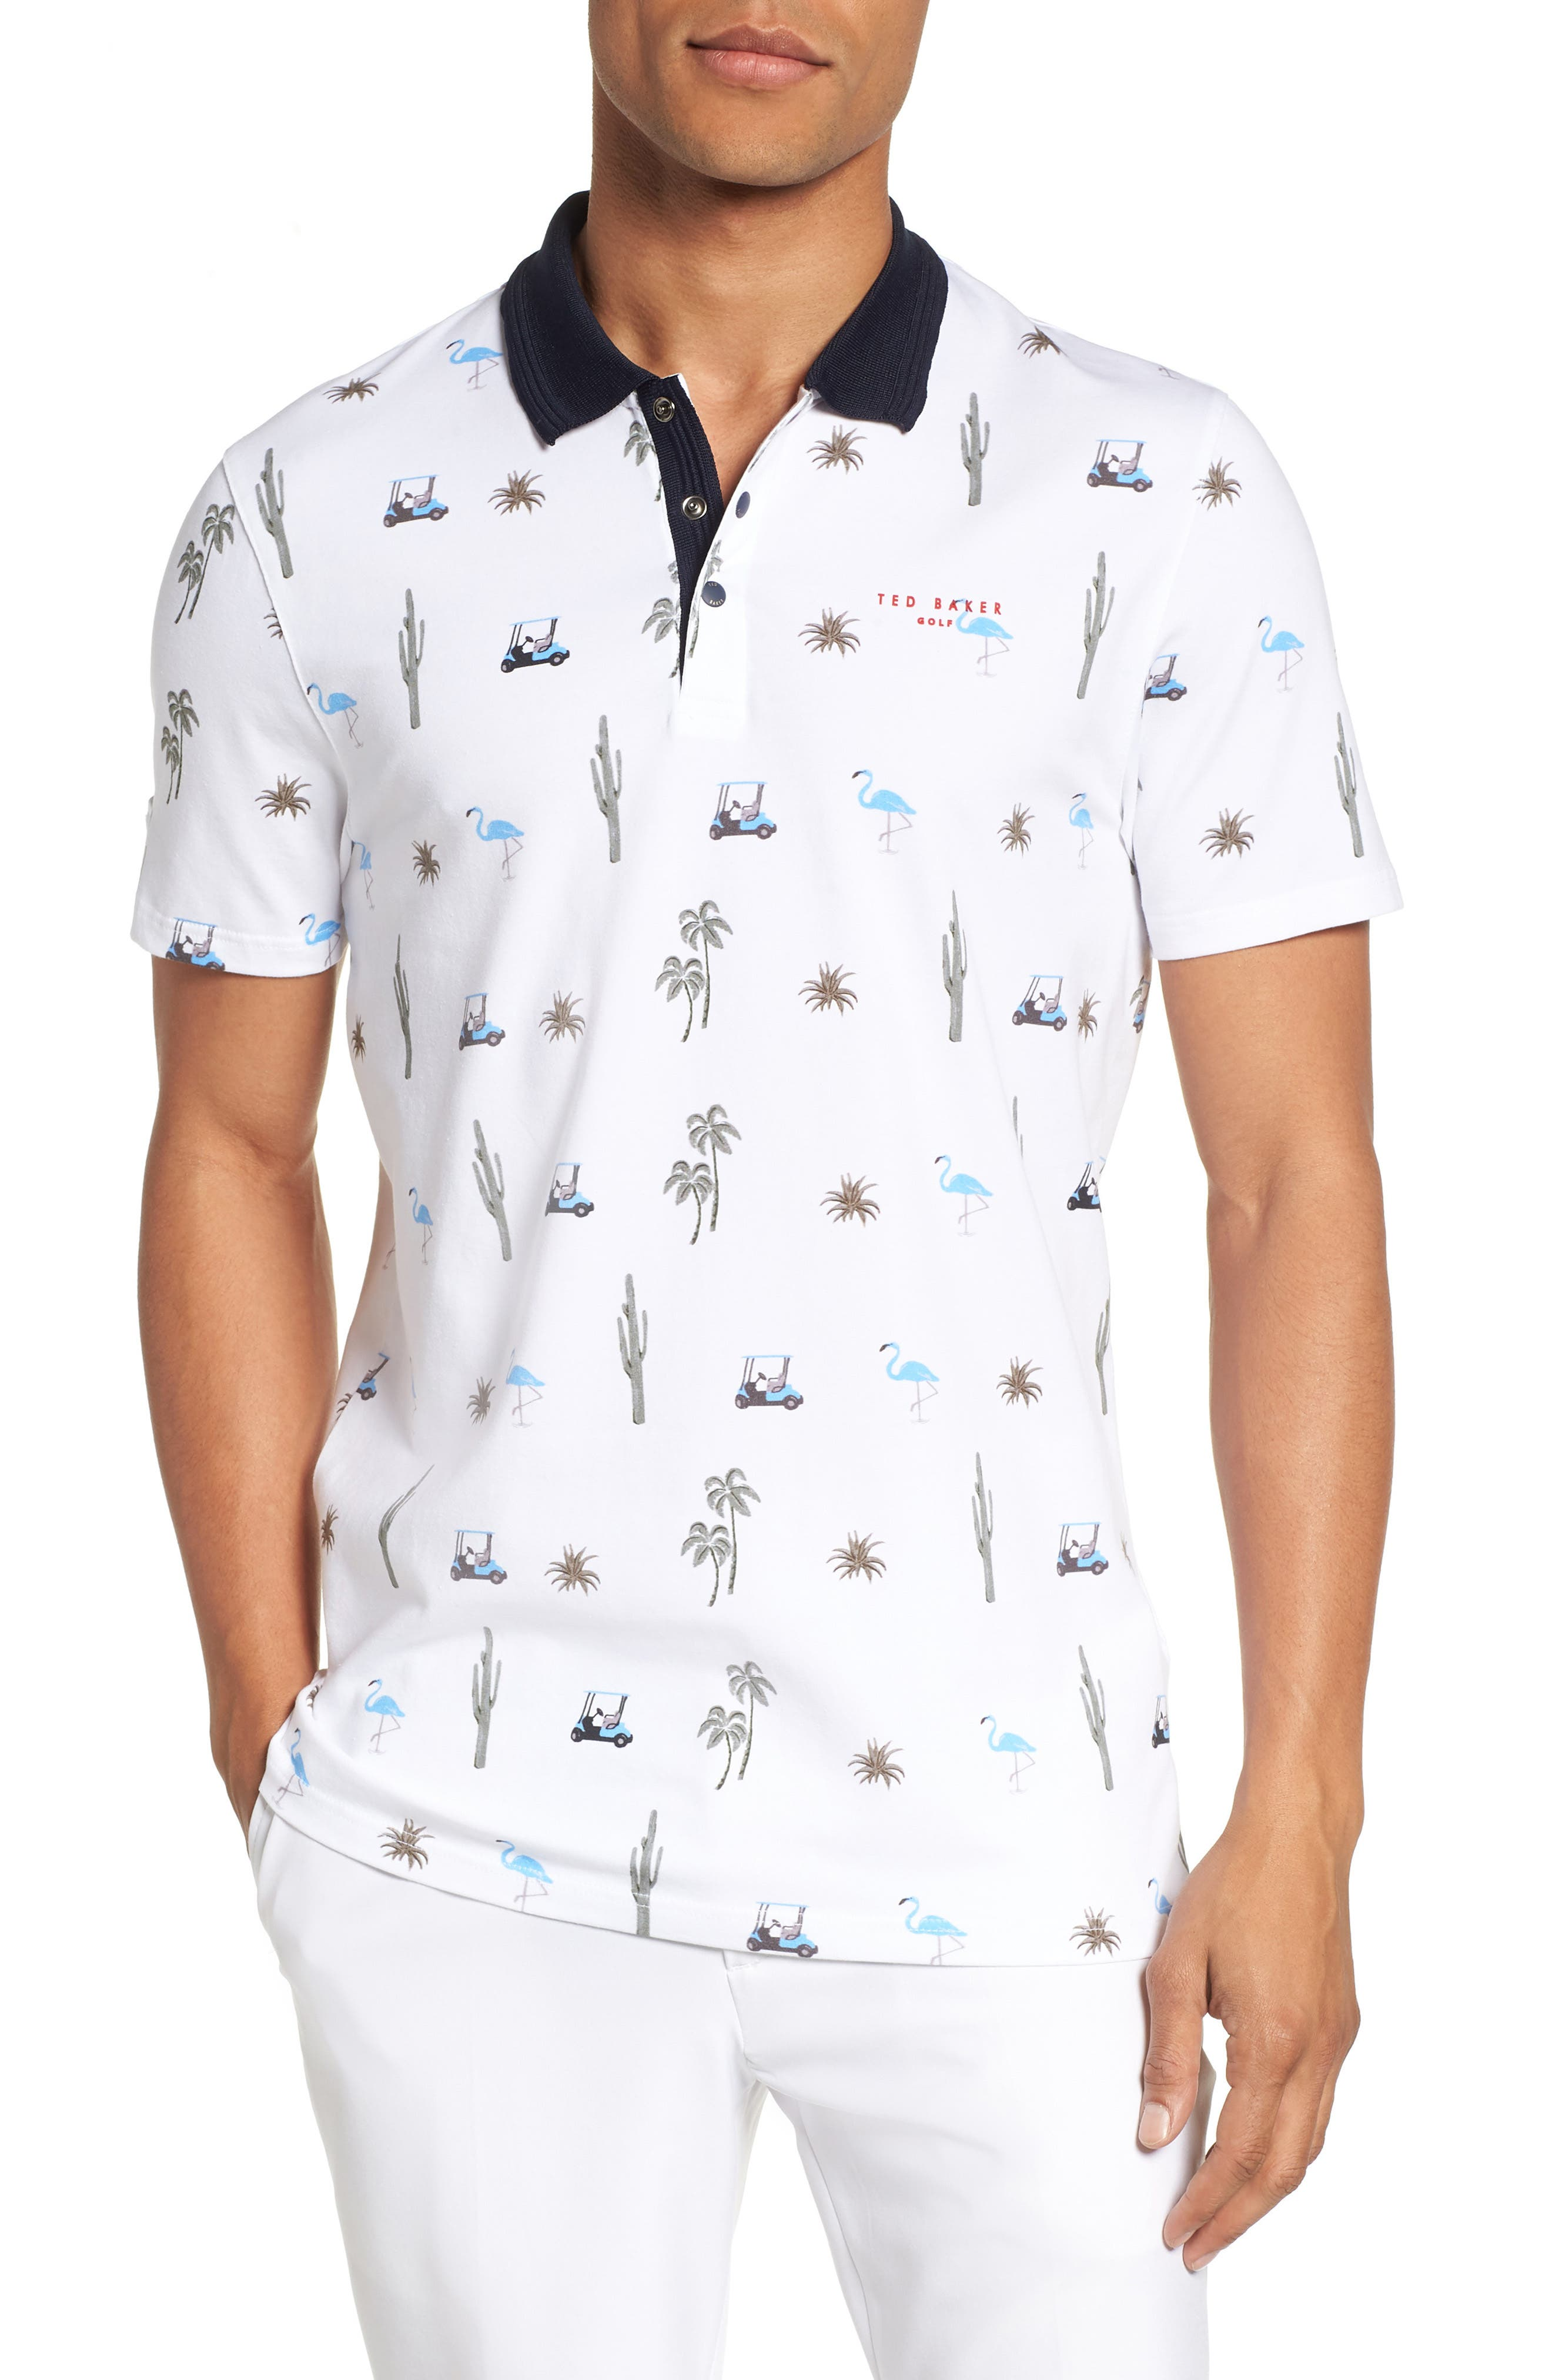 Alternate Image 1 Selected - Ted Baker London Trim Fit Golf Print Polo